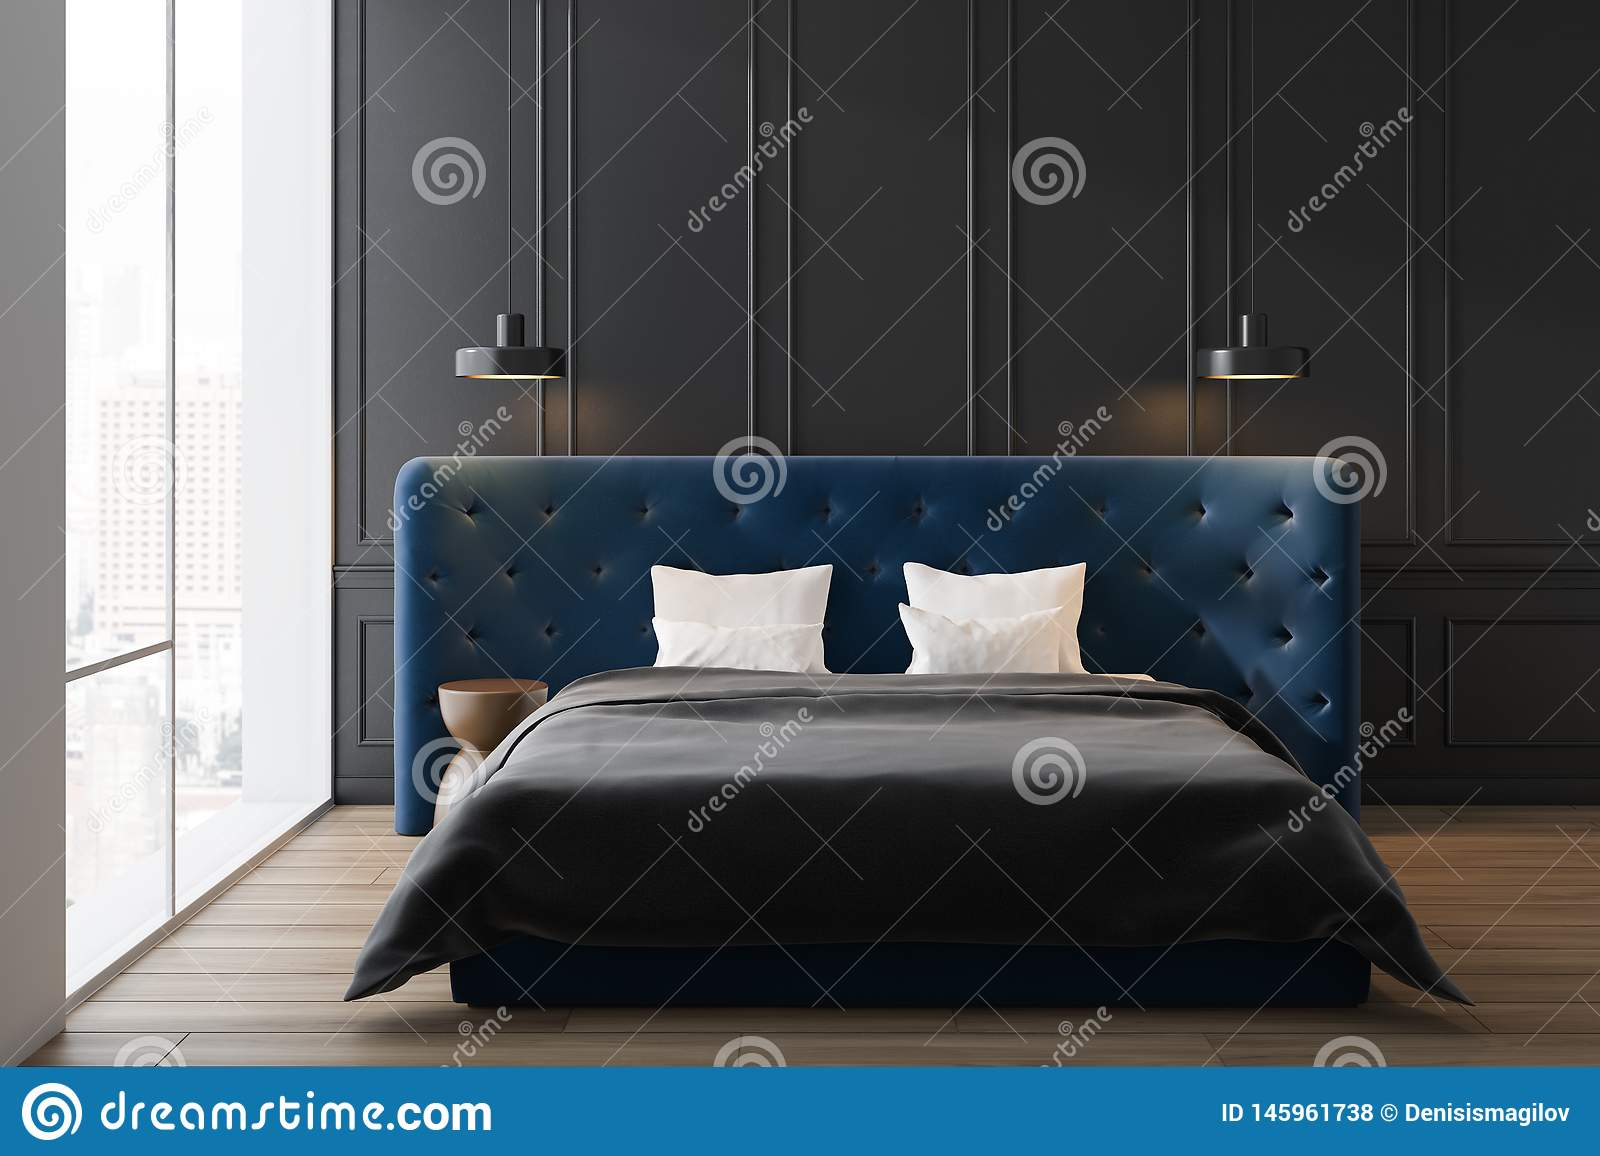 Gray Master Bedroom With Blue Bed Stock Illustration Illustration Of Bedroom Indoor 145961738